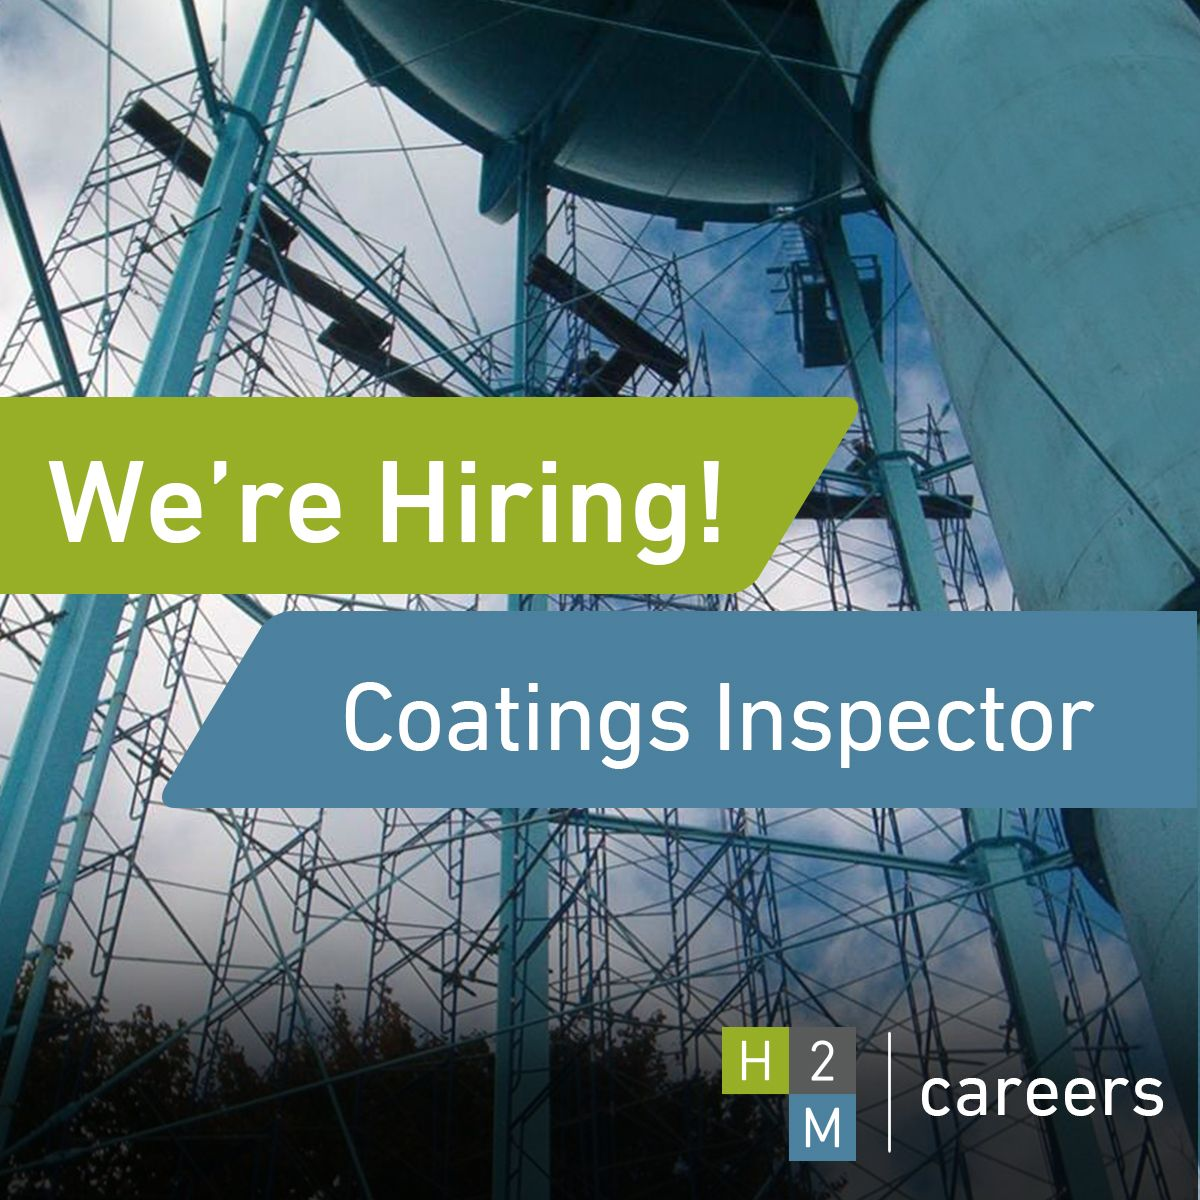 WeRe Seeking A Coatings Inspector With  Years Of Experience In